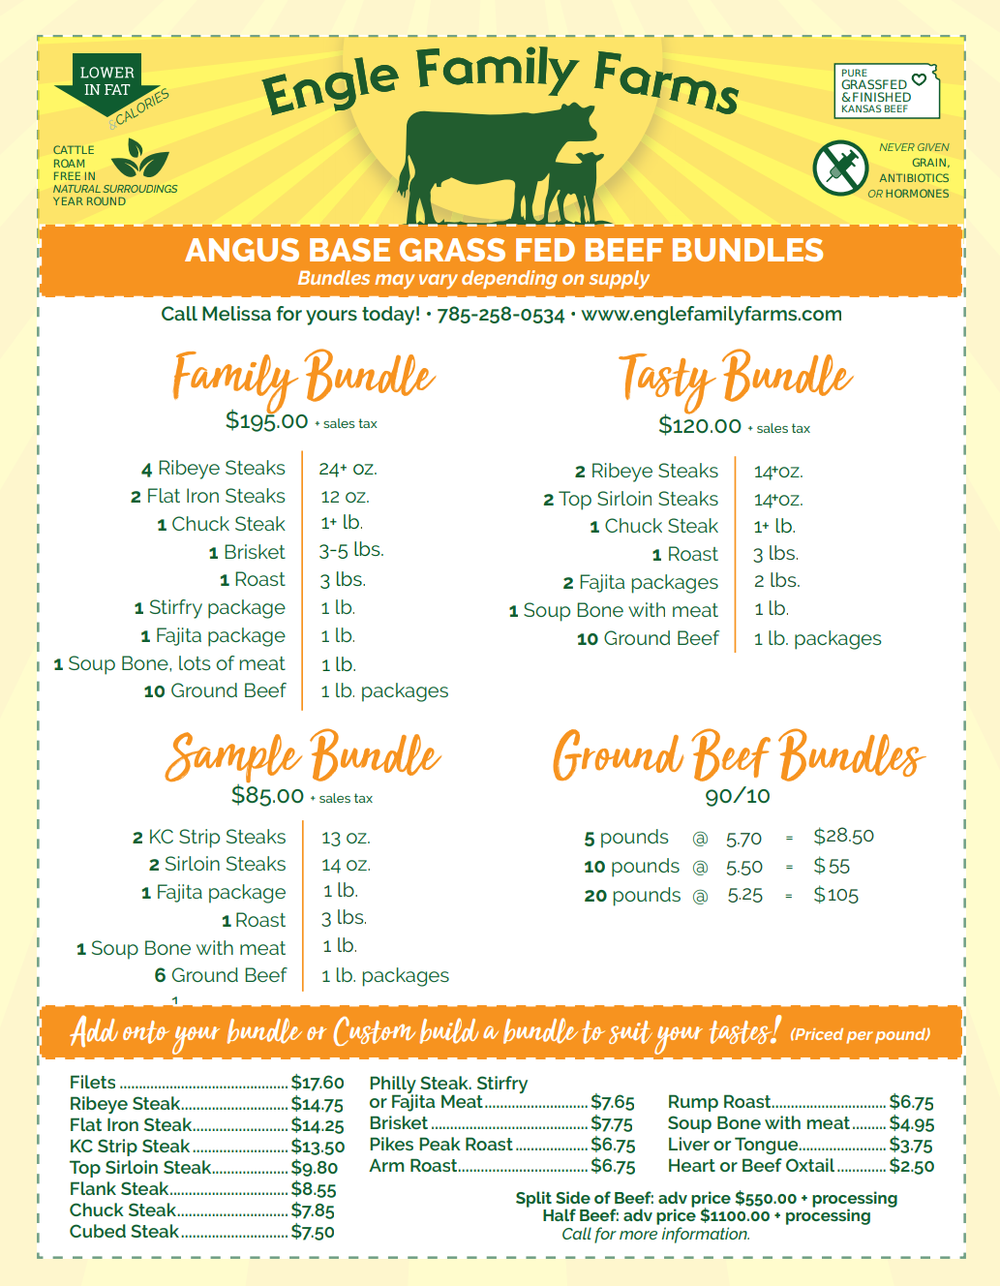 Certified Grass Fed Beef Bundles are available. - Bundles vary depending on what we have in stock.Build your own bundle to suit your tastes.Call for availability. Melissa Engle 785-258-0534